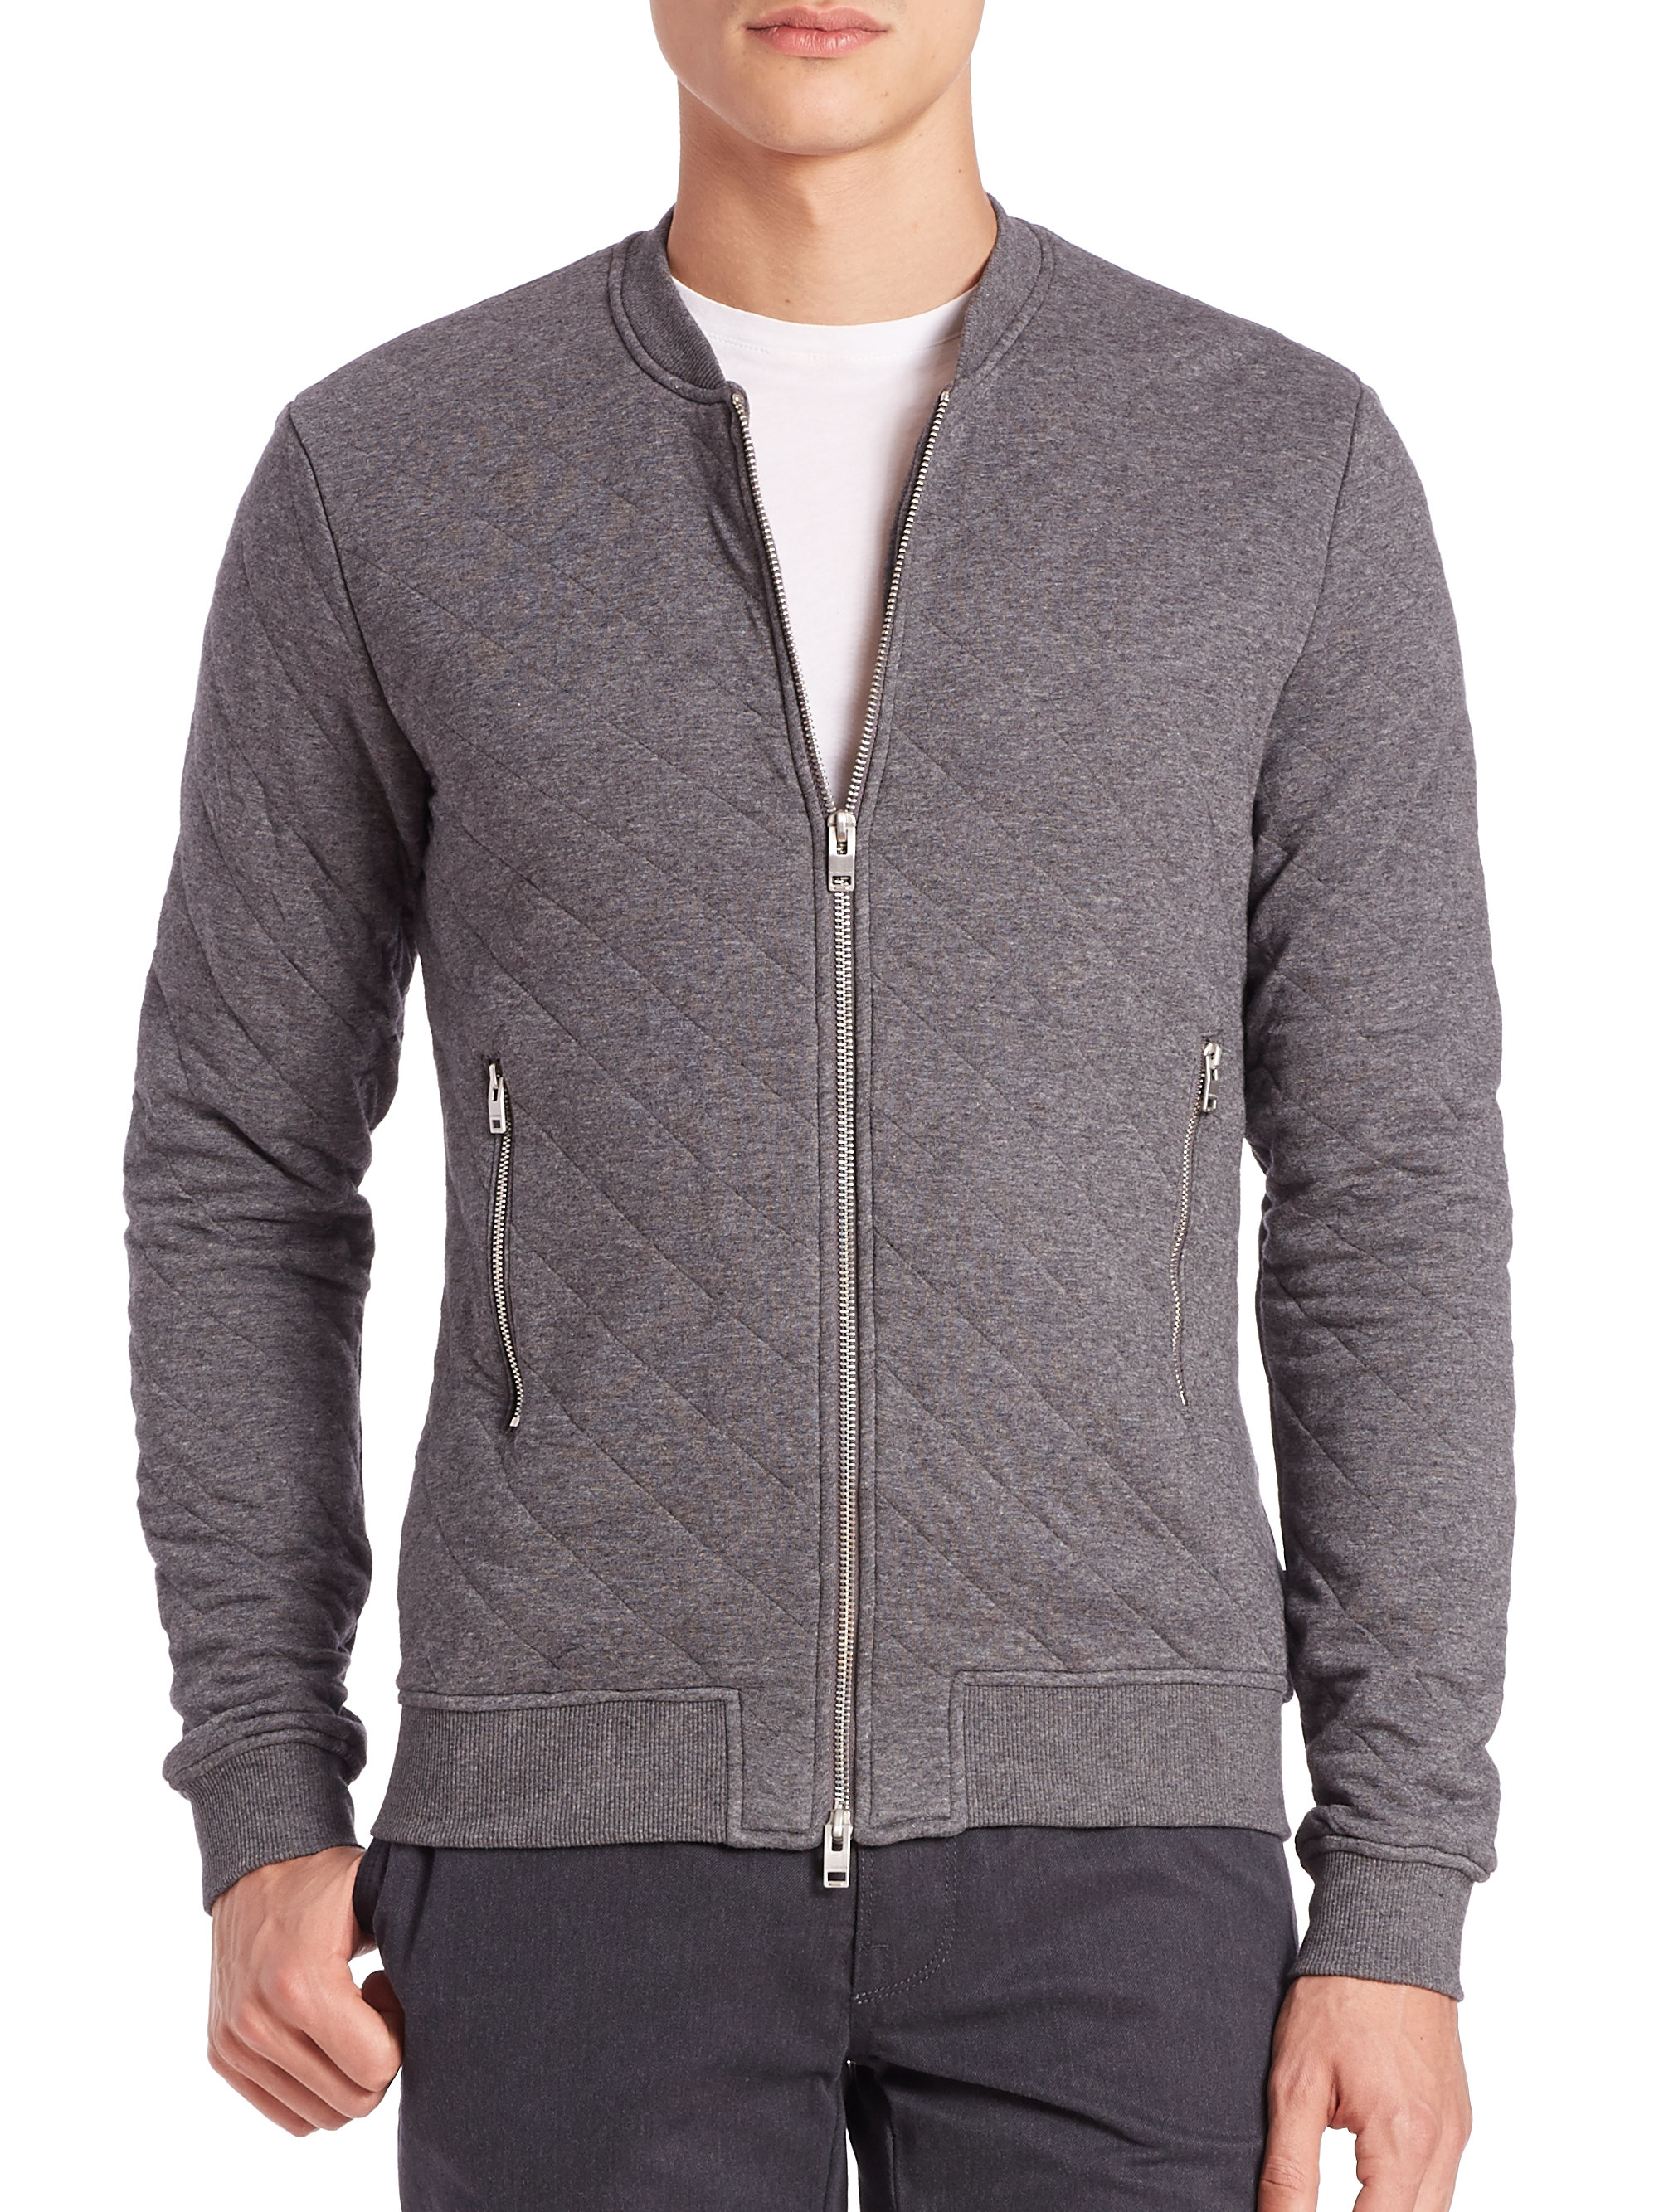 J.lindeberg Randall Quilted Zip Sweater in Gray for Men | Lyst